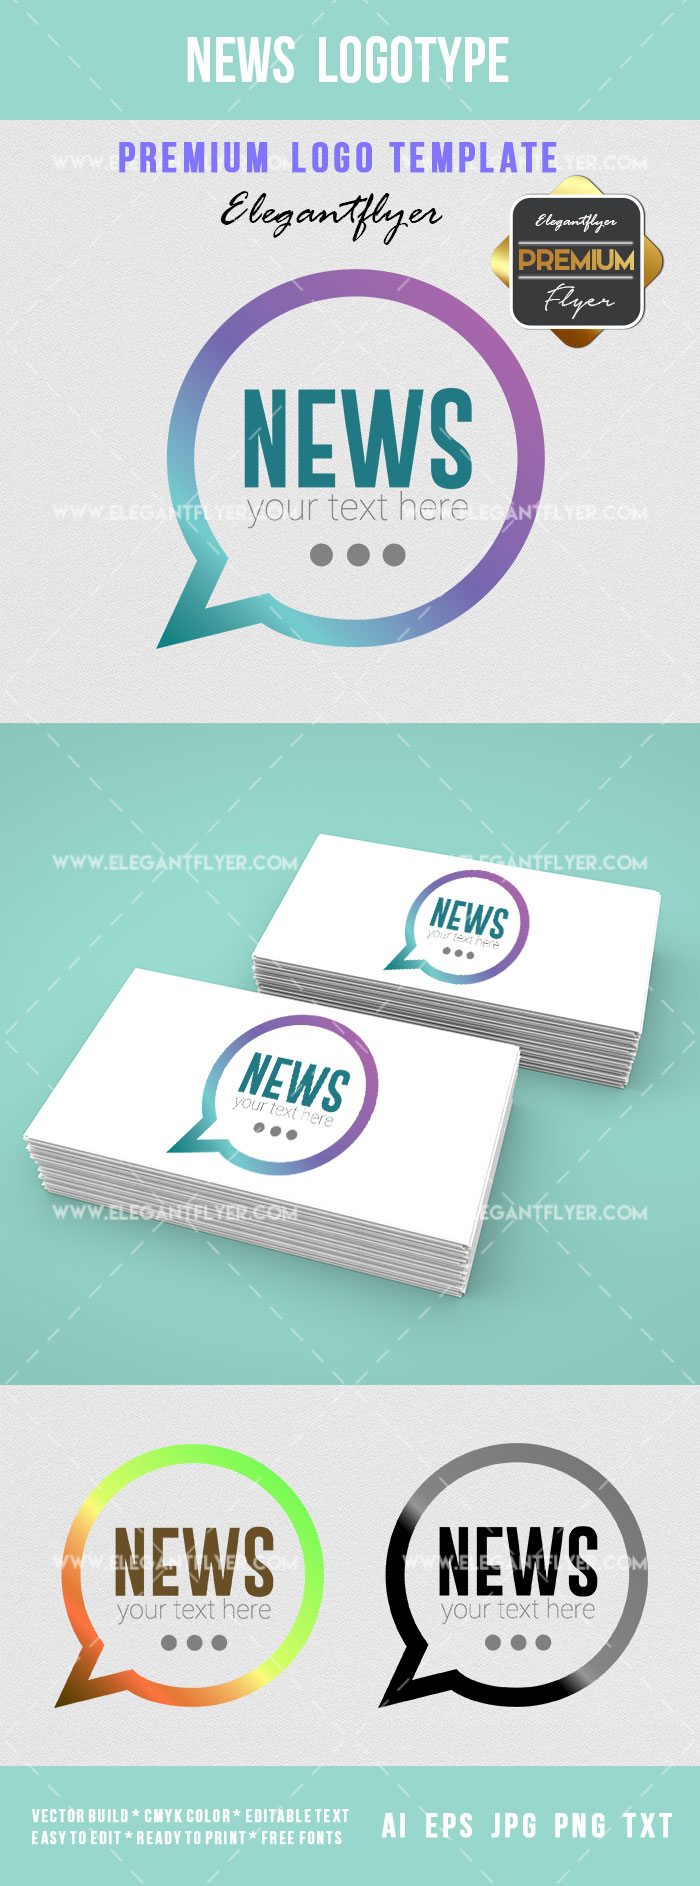 News for Logo Template